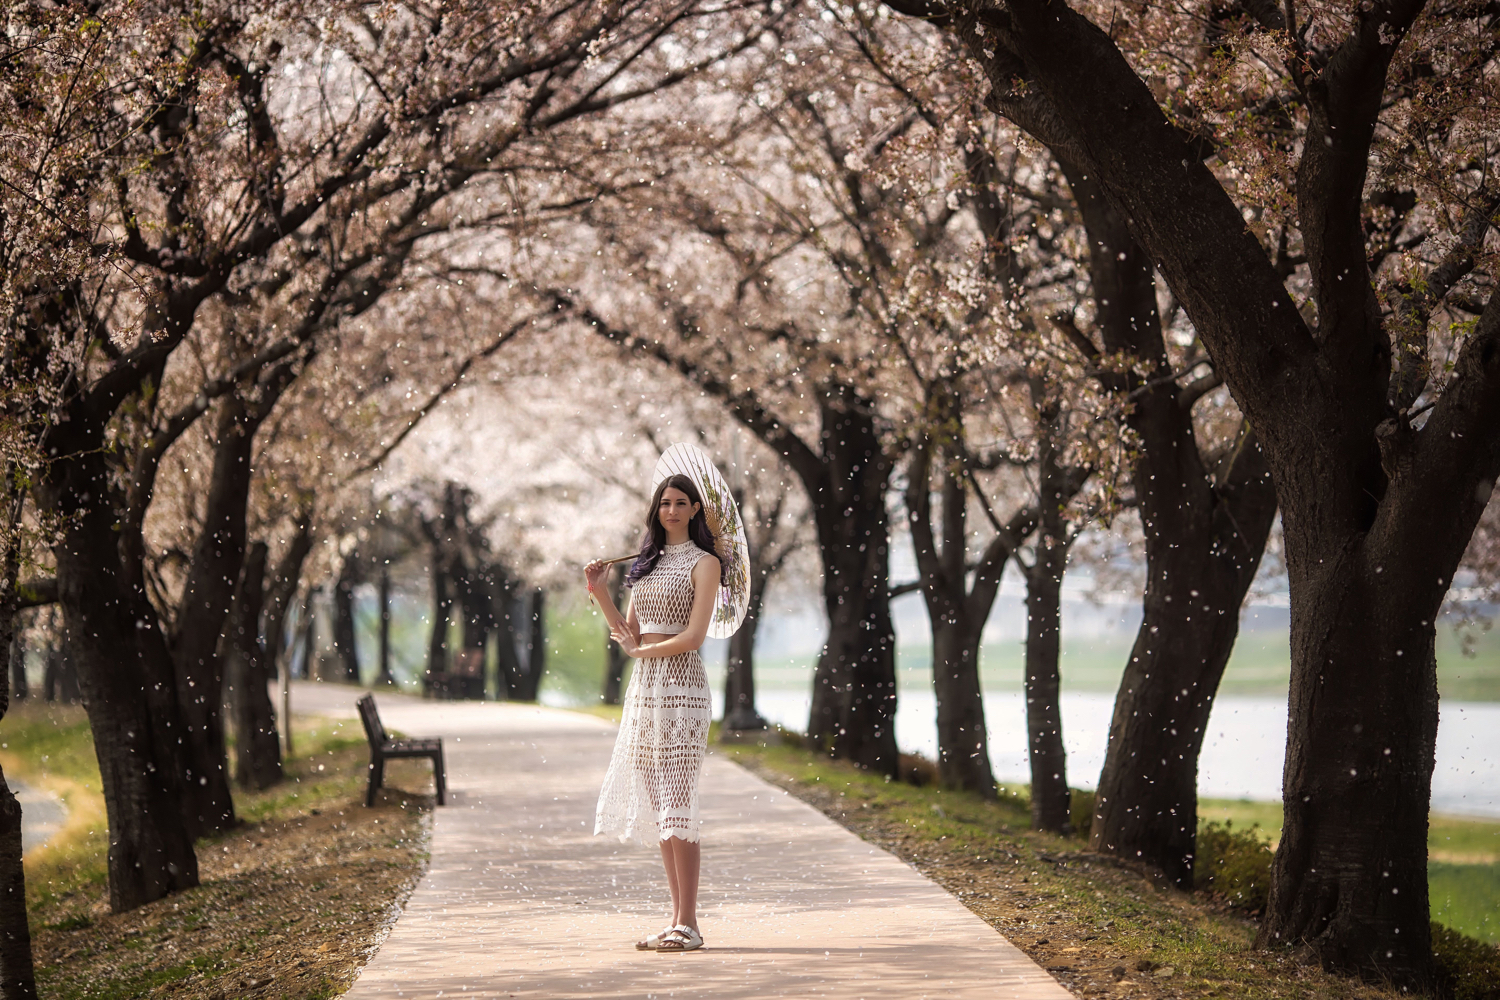 Image: In this photo the model stands under cherry blossom trees as the petals fall down.